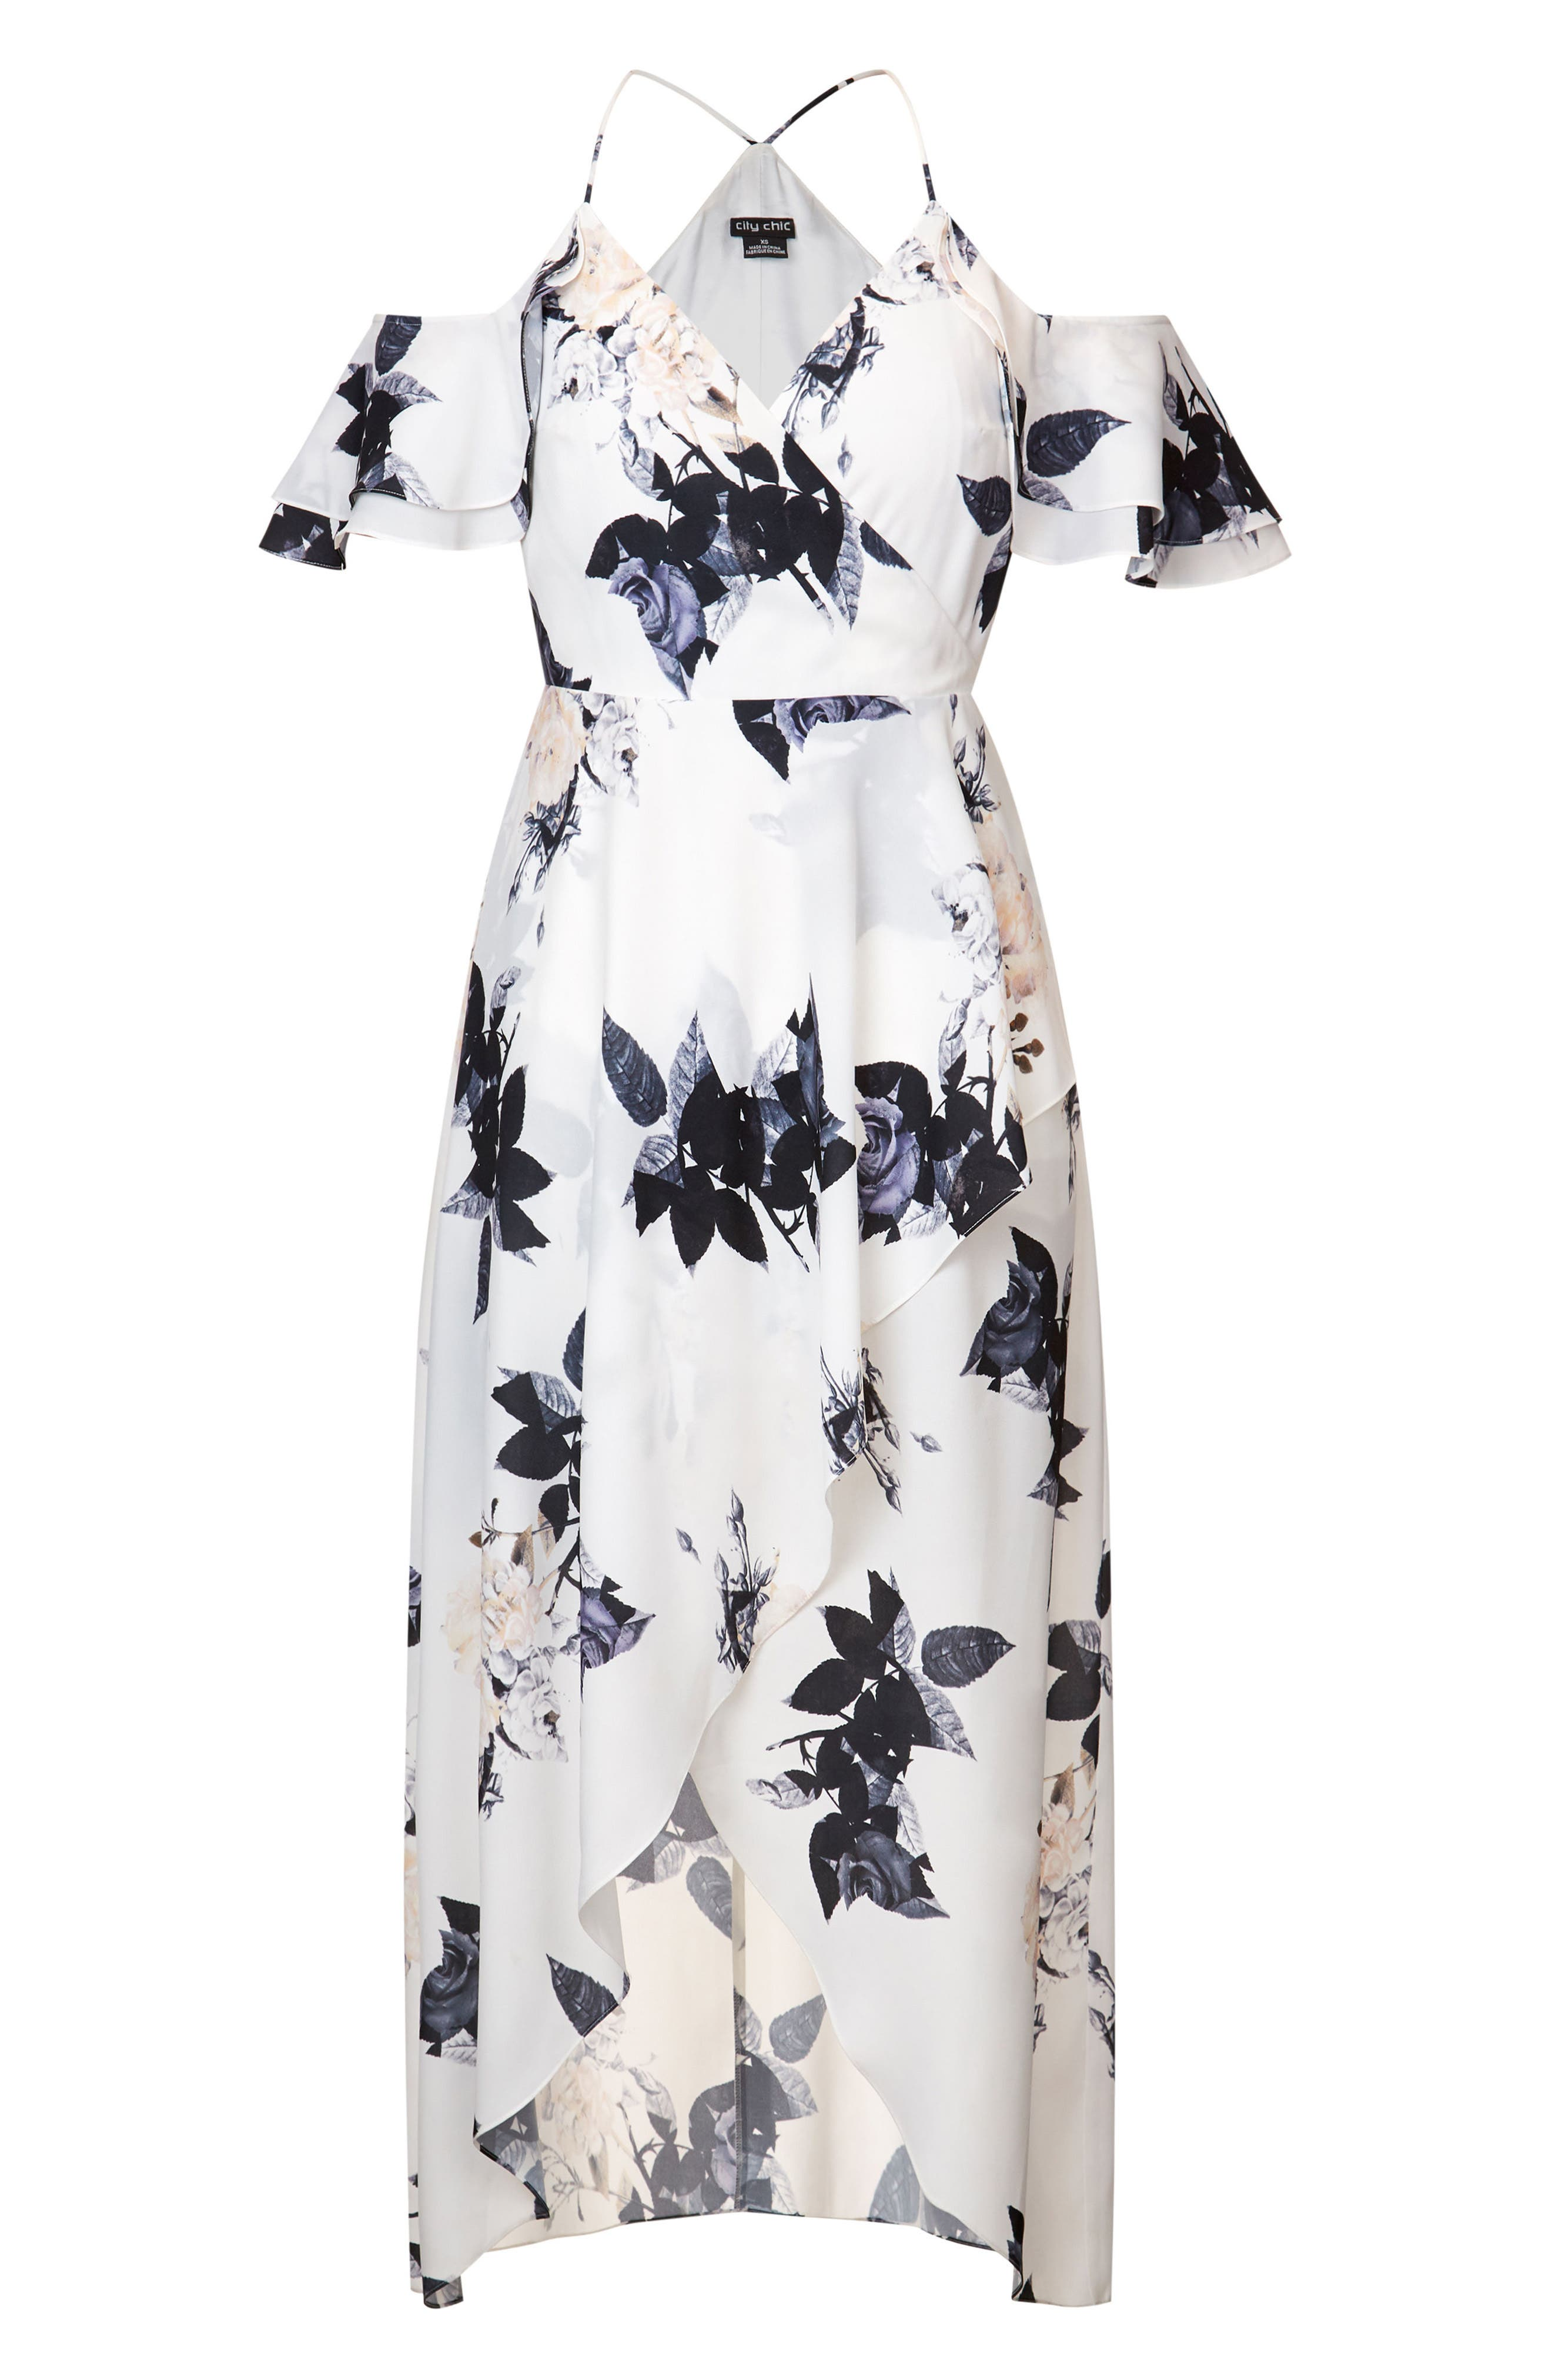 Floral Print Ruffle Maxi Dress,                             Alternate thumbnail 4, color,                             CREAM FLORAL